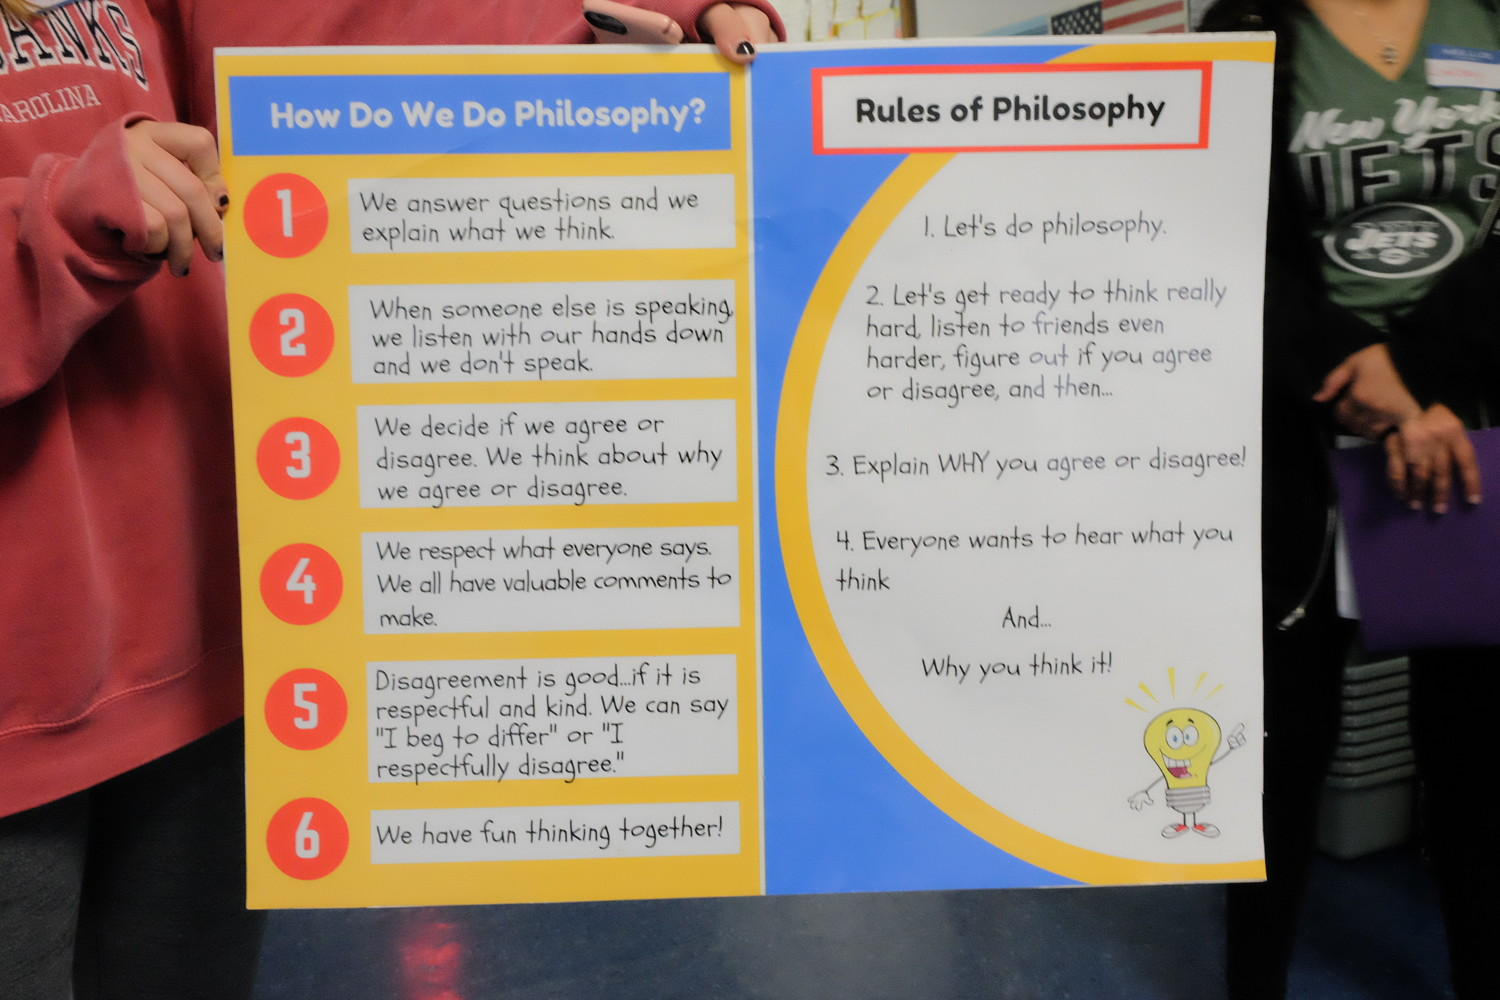 The six rules of philosophy, above, which help students have respectful disagreements without fighting.